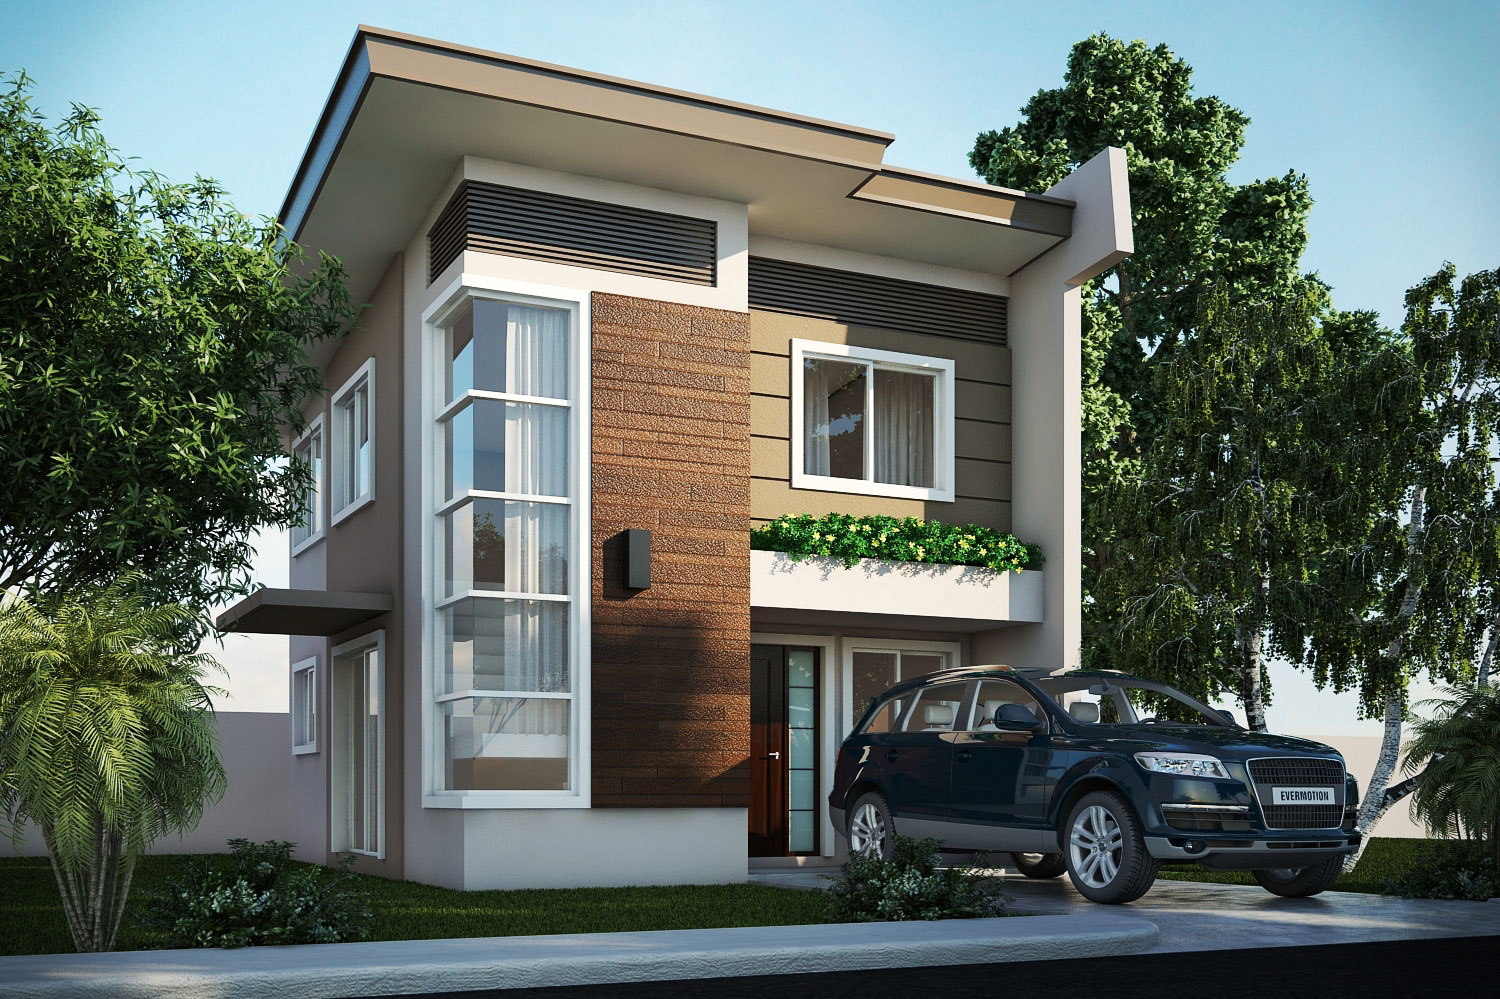 Business as usual zuri residences taytay rizal cheapest single attached house and lot near Design own home